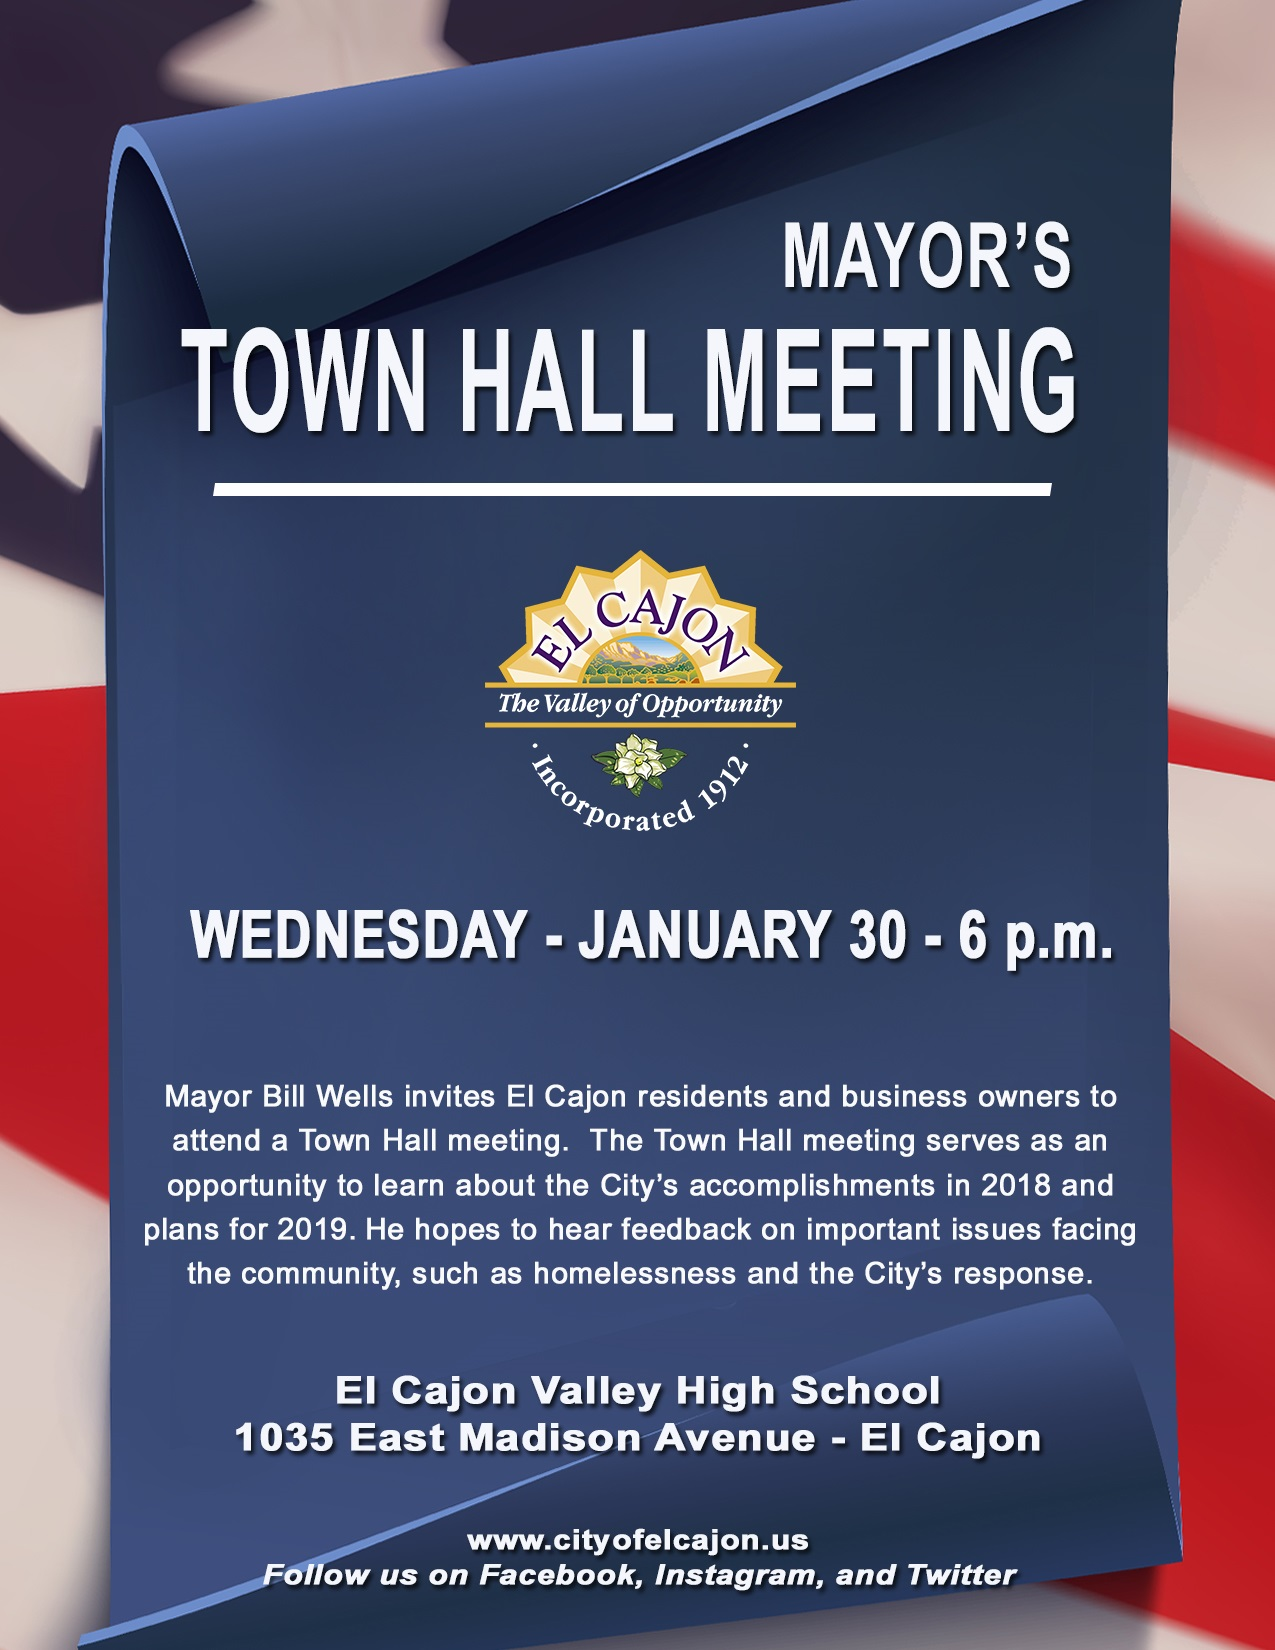 Mayor's Town Hall Meeting is January 30th at 6 p.m.